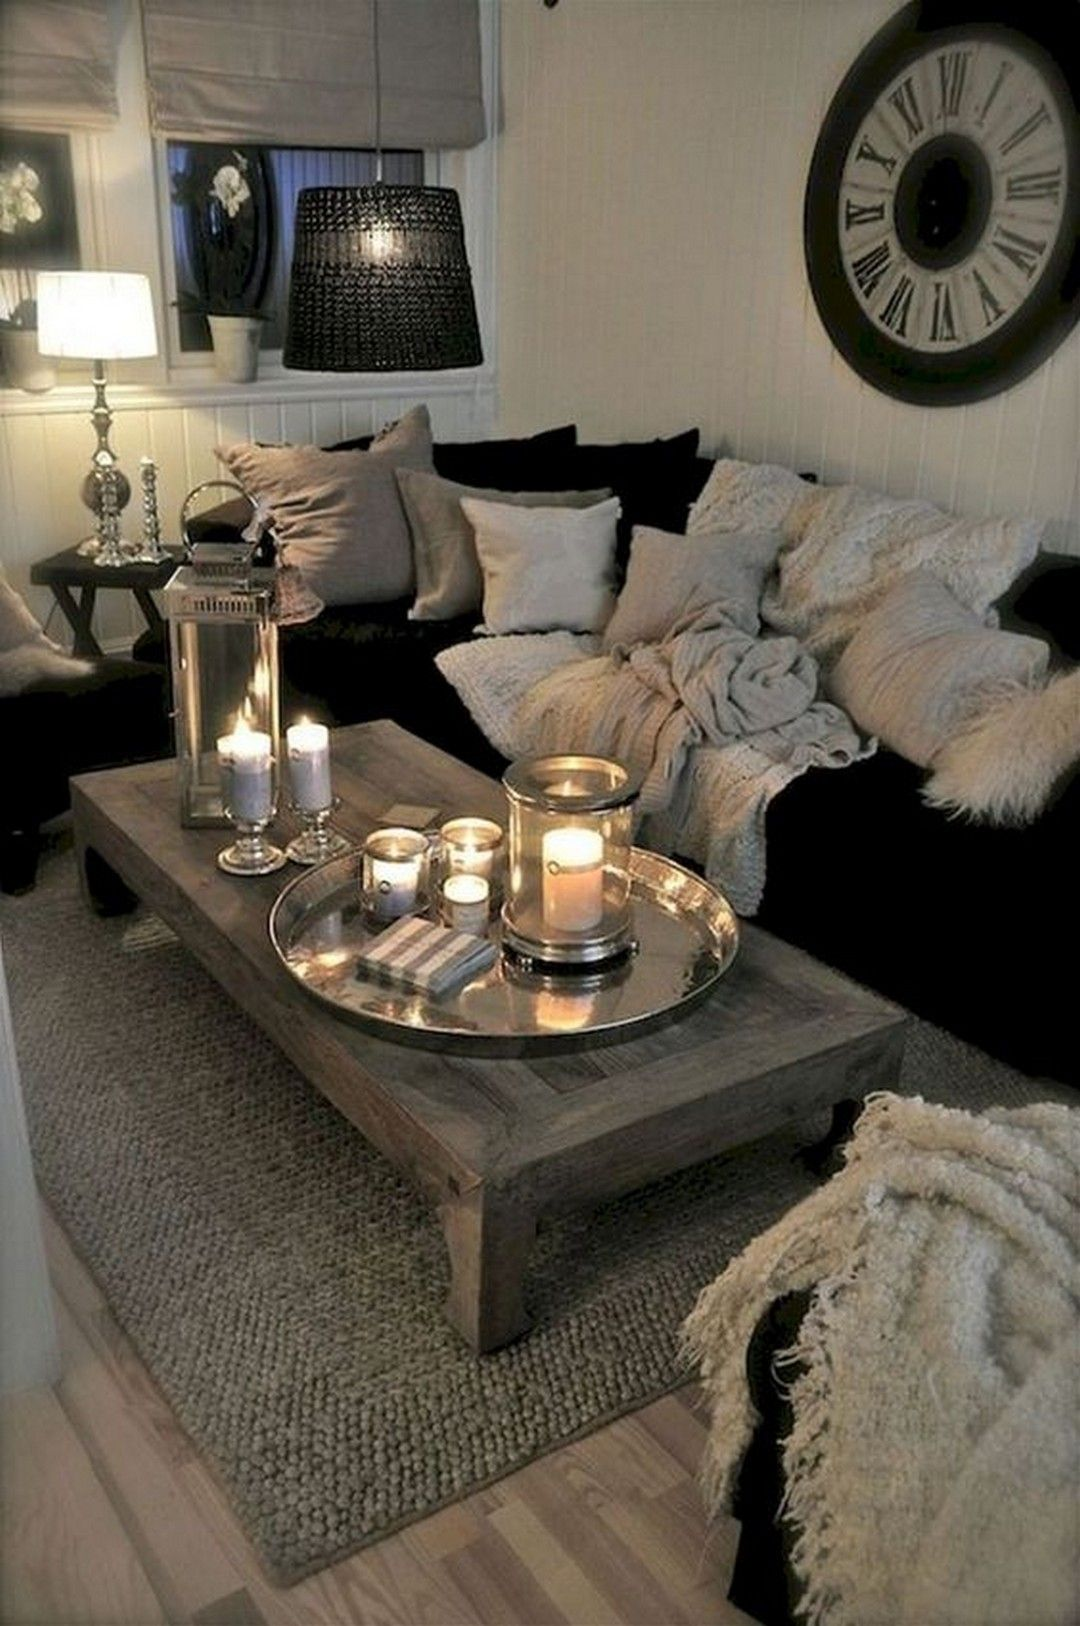 9 Elegant Apartment Living Room Home Decor Ideas To Copy Easily 9 Elegant Apartment Living Room Home Decor Ideas to Copy Easily Living Room Decoration cheap living room decor